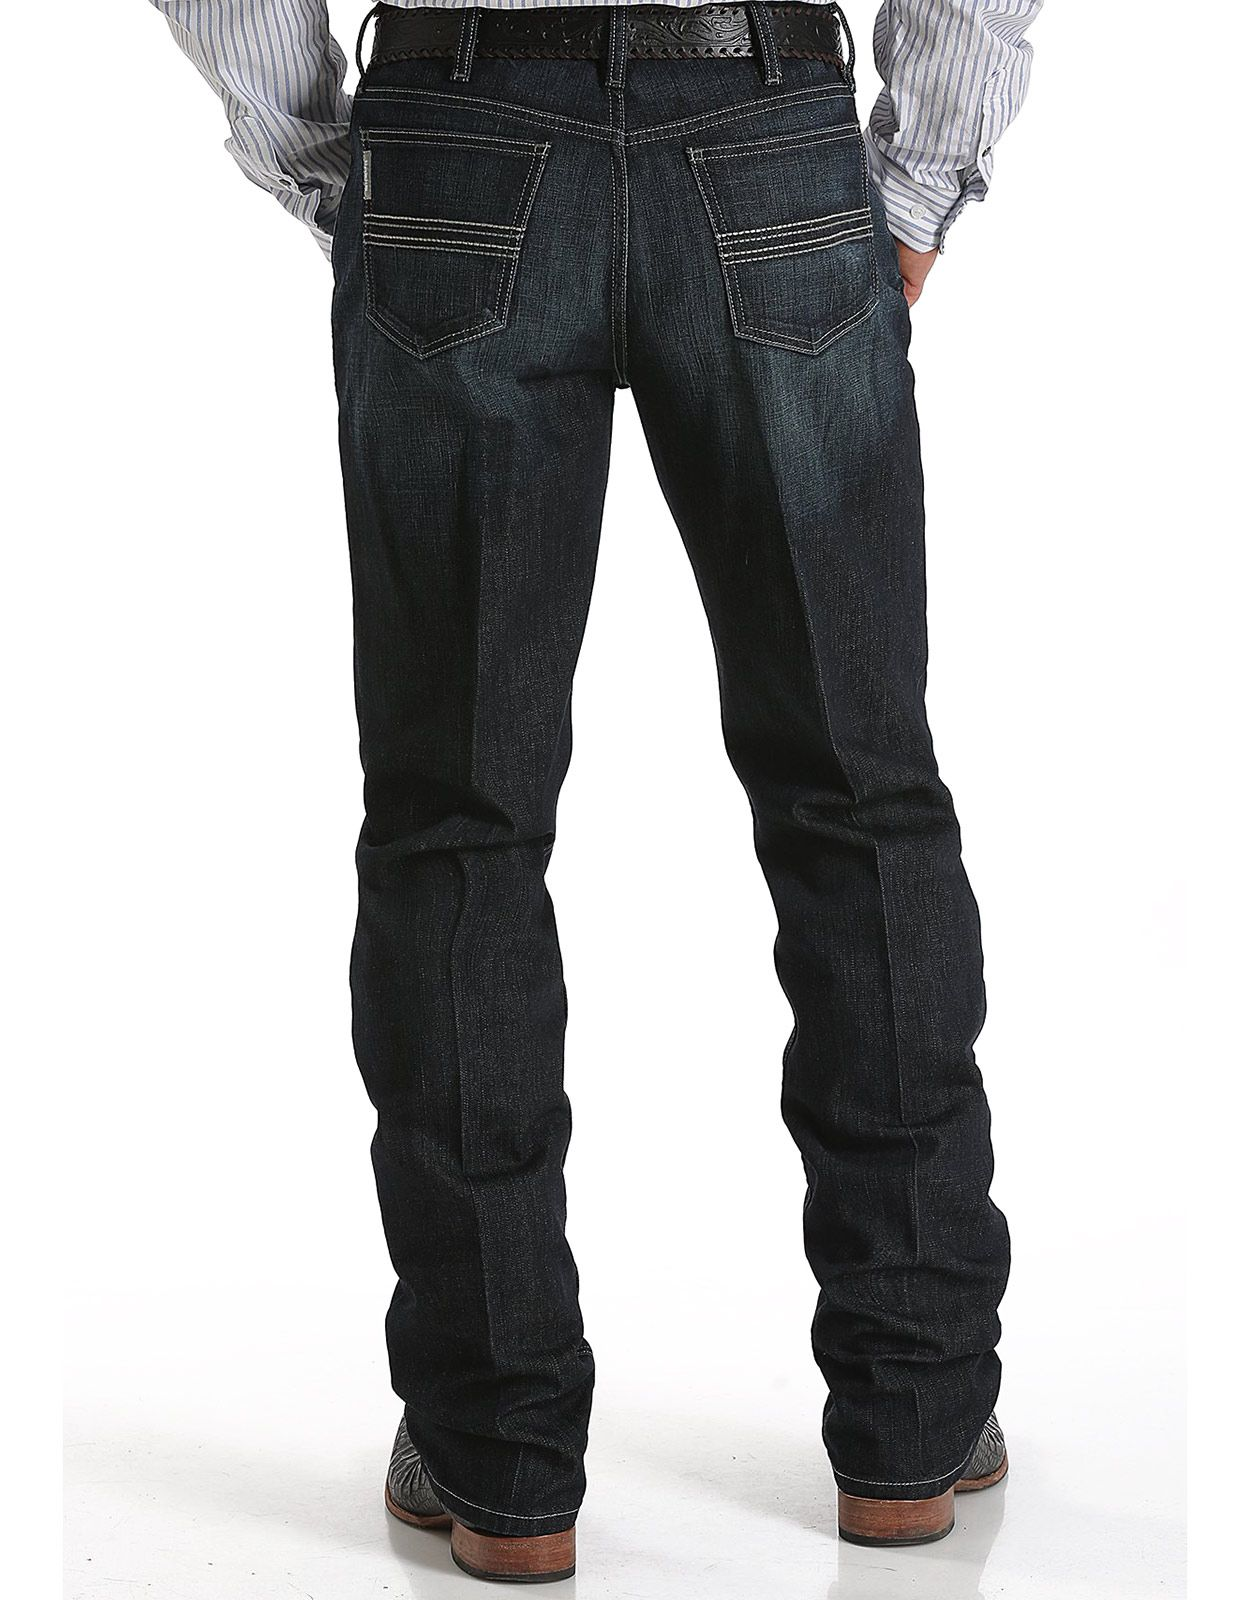 Cinch Men's Silver Label Performance Denim Mid Rise Slim Fit Straight Leg Jeans - Rinse